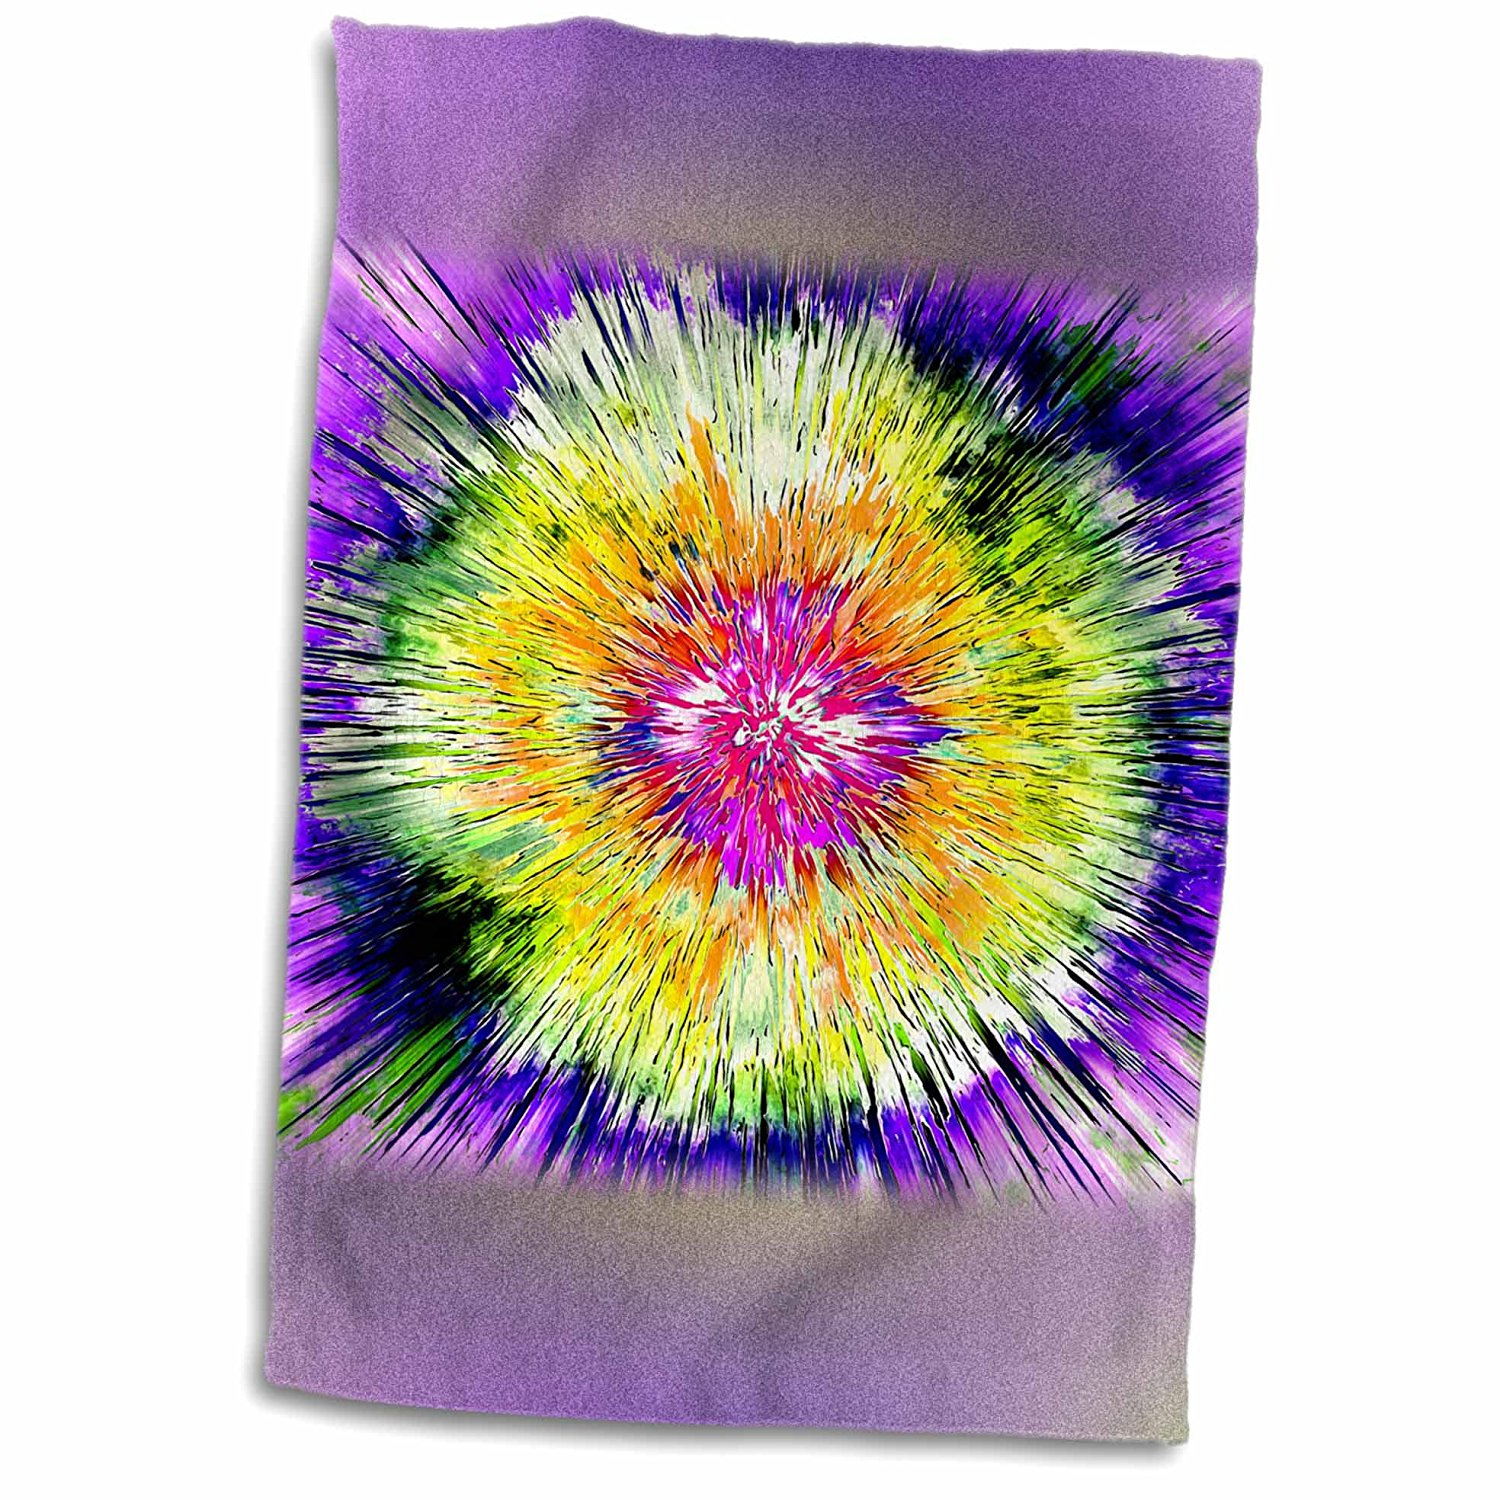 3dRose Phil Perkins - Abstract - Textured Retro Tie Die - colorful tie dye design with texture - 12x18 Towel (twl_243431_1)